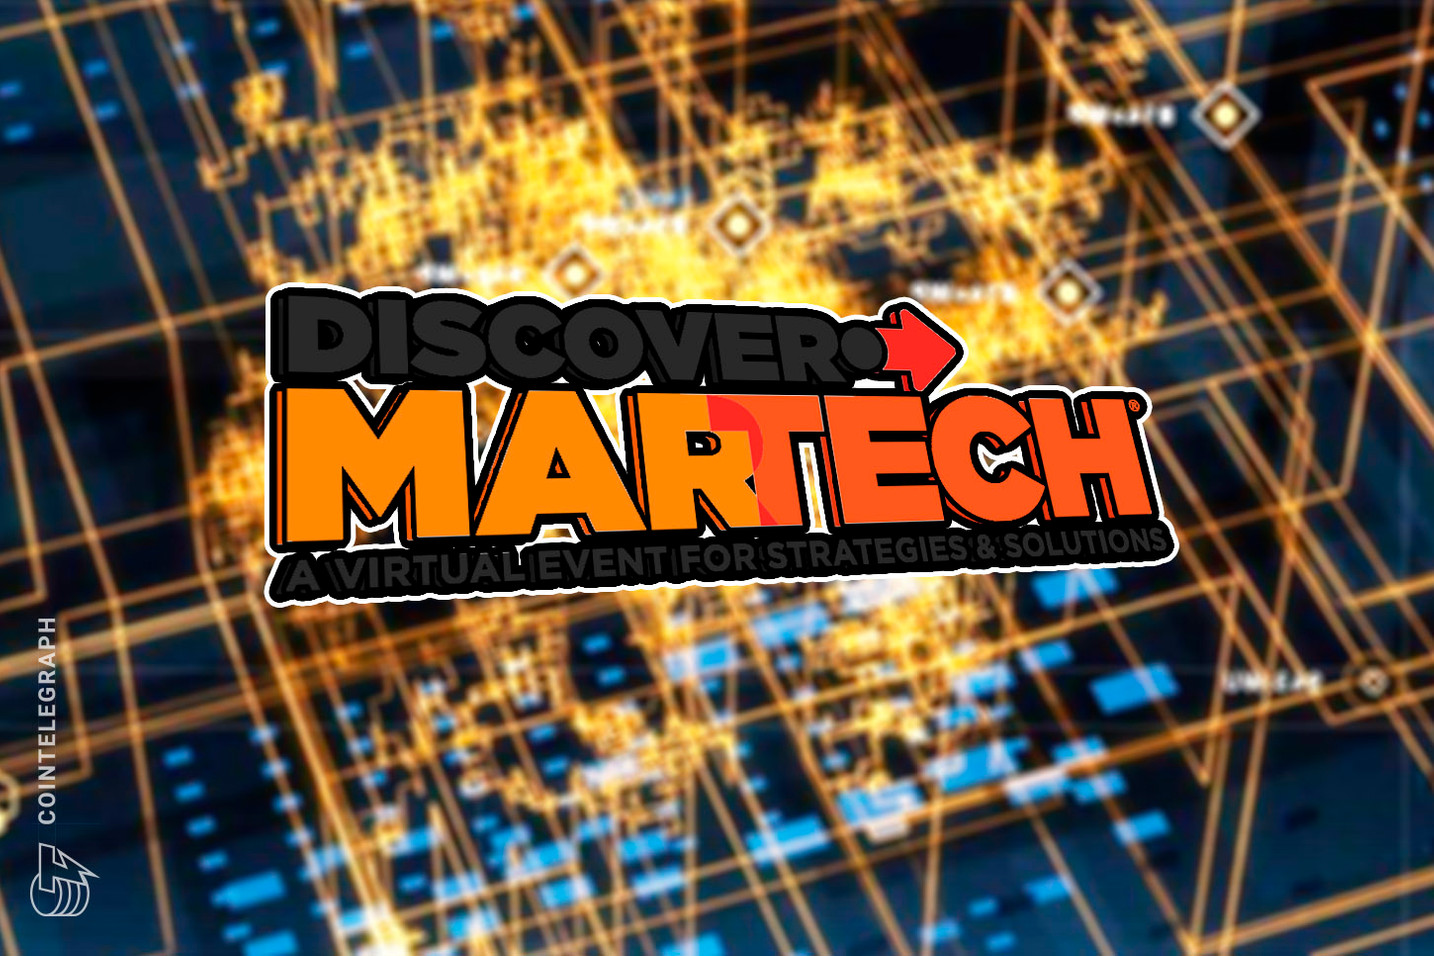 Third Door Media Announces 'Discover MarTech,' a Free Virtual Event